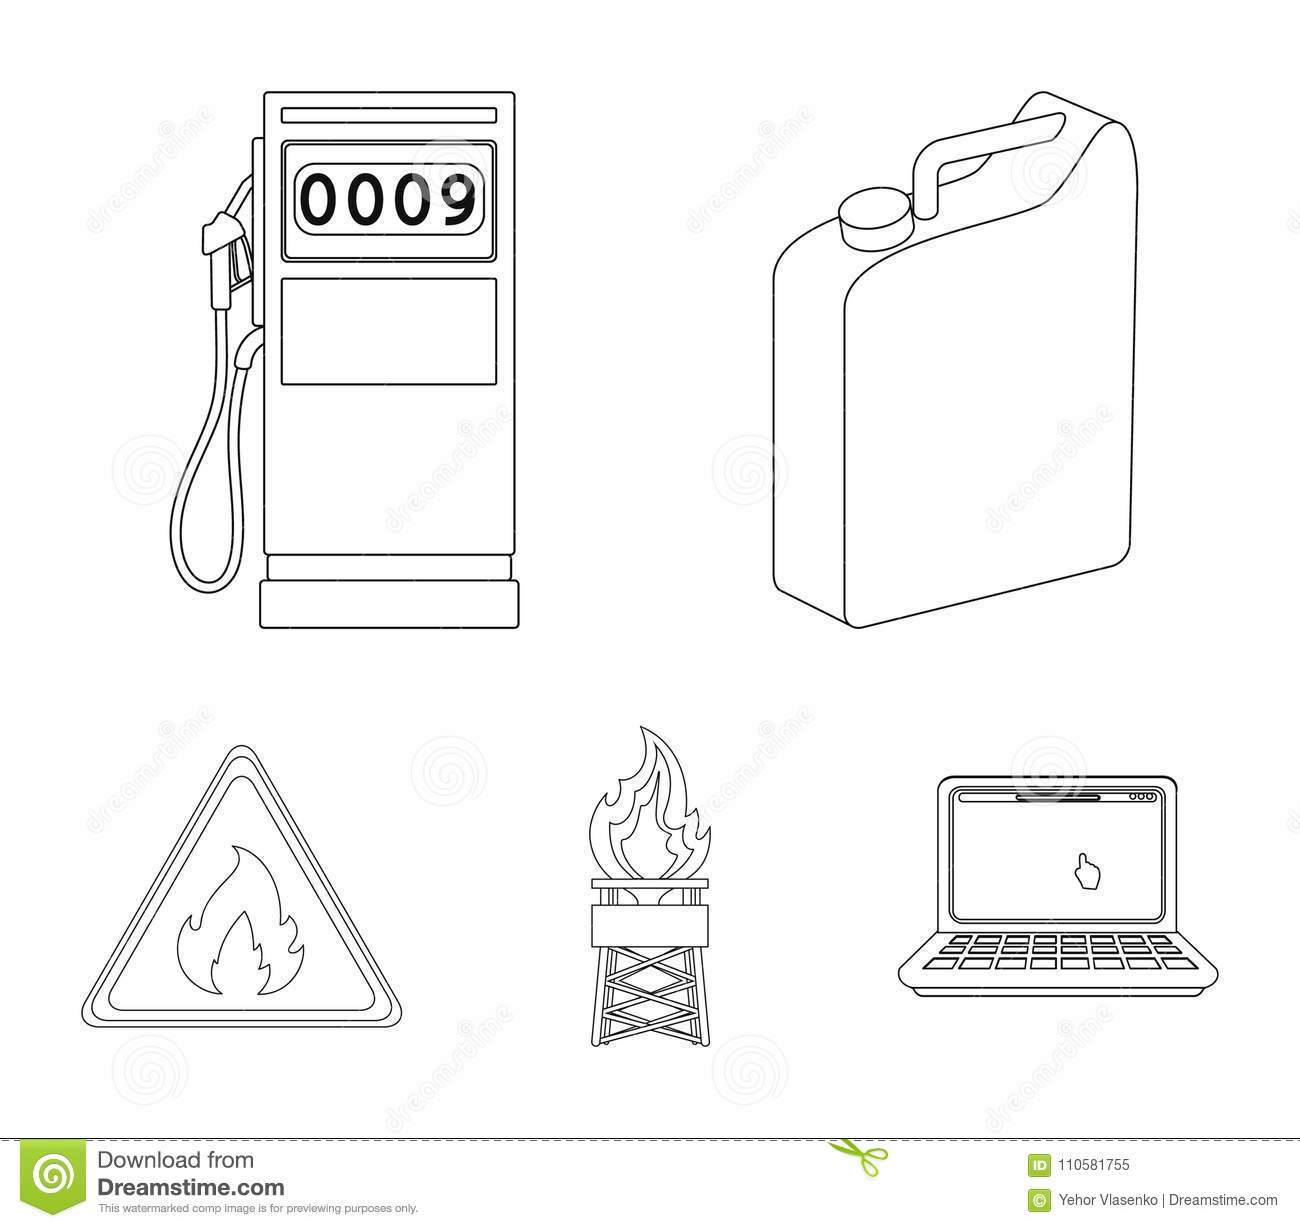 Canister For Gasoline, Gas Station, Tower, Warning Sign